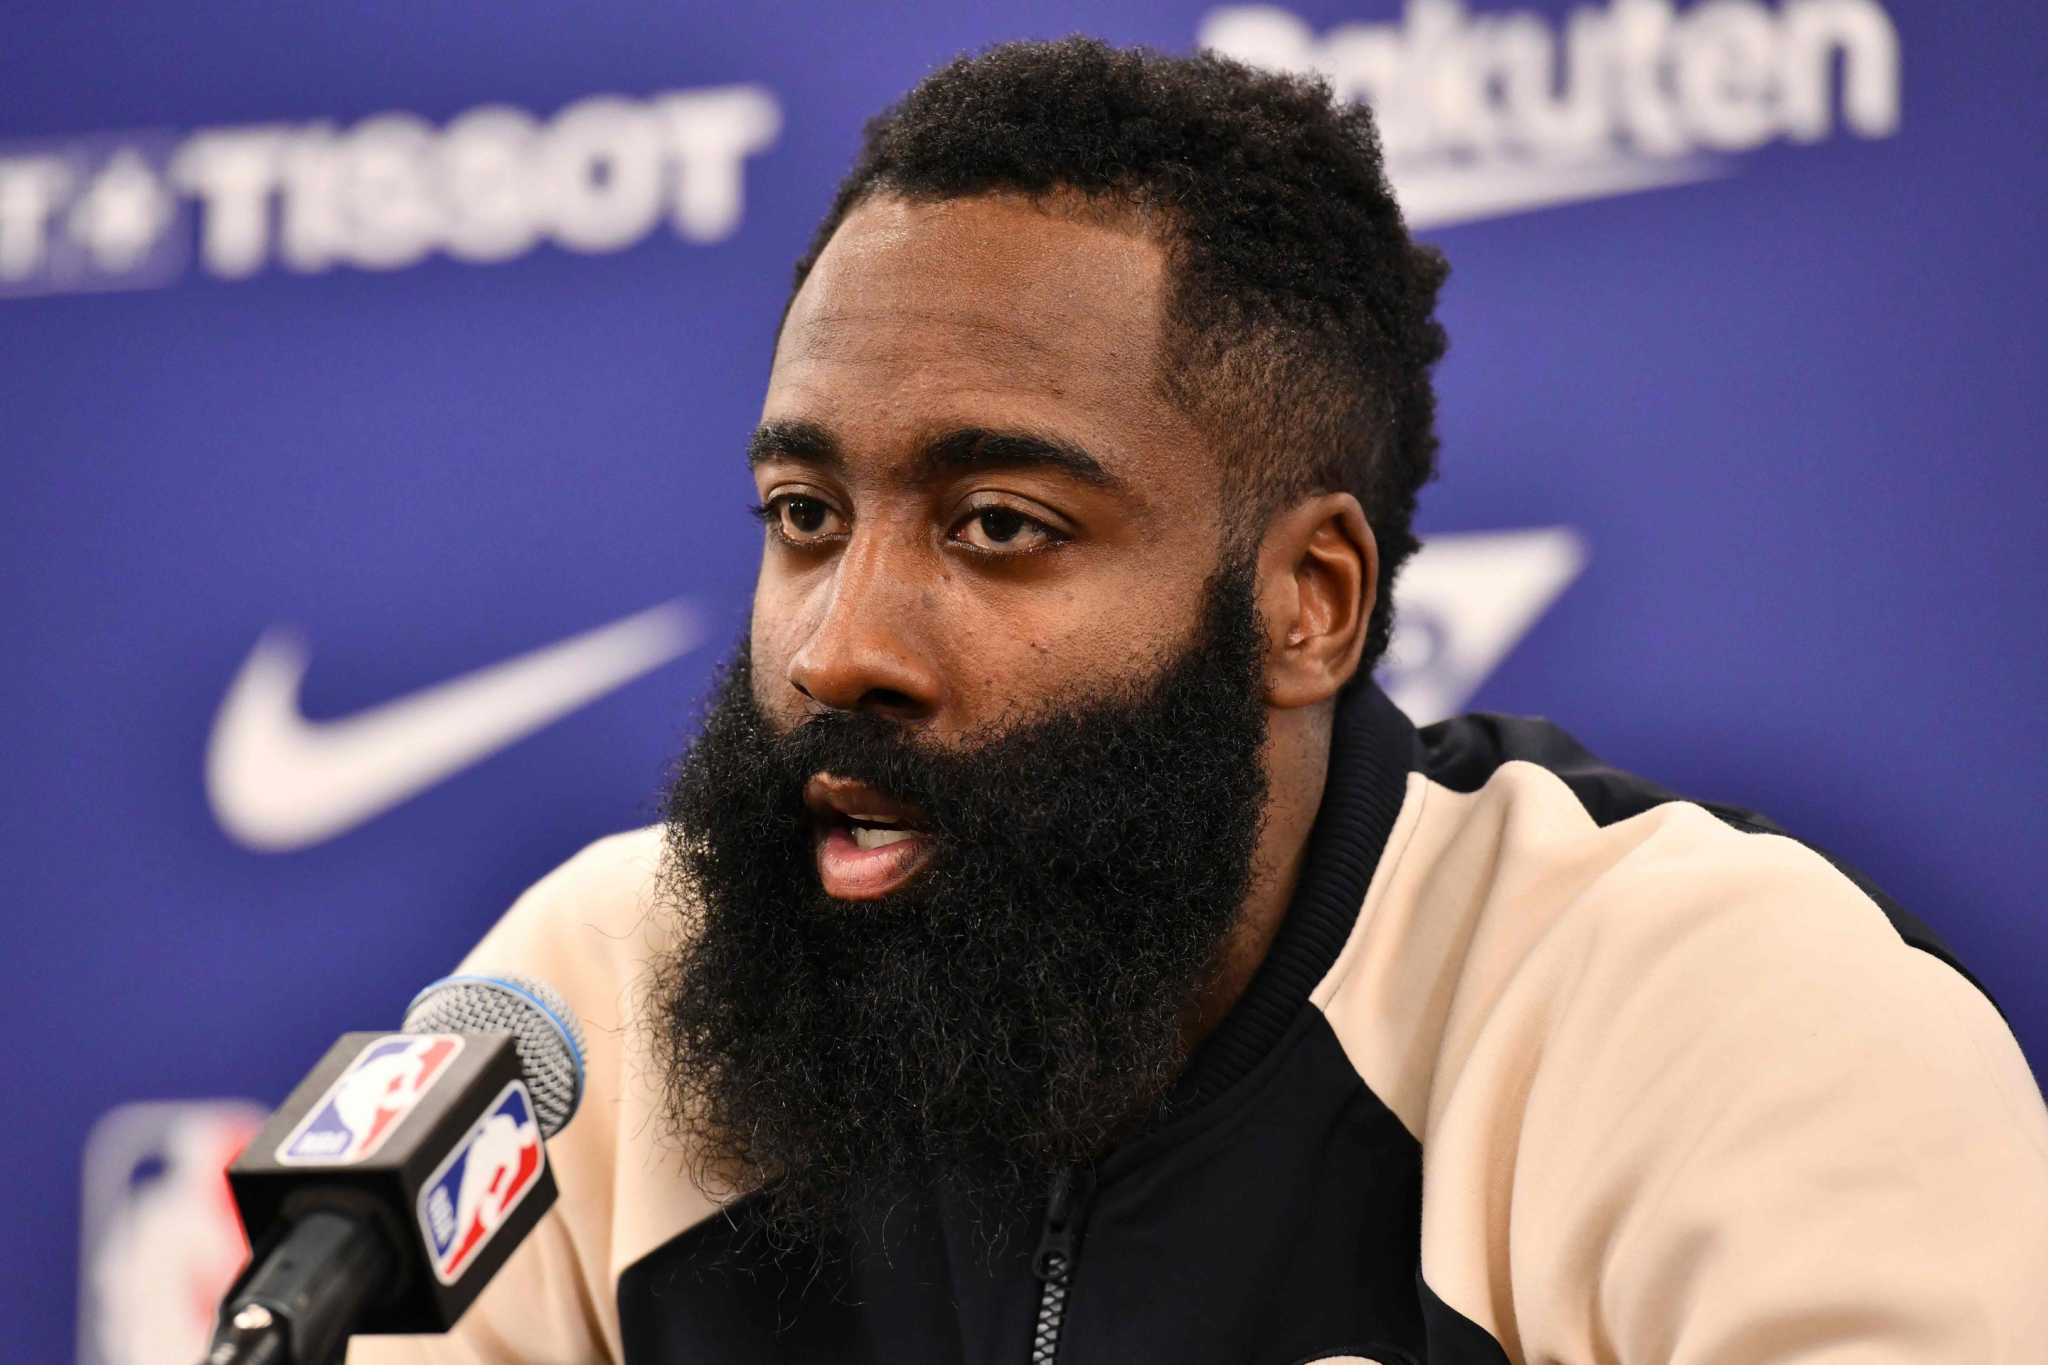 James Harden says his Rockets' exit wasn't disrespectful